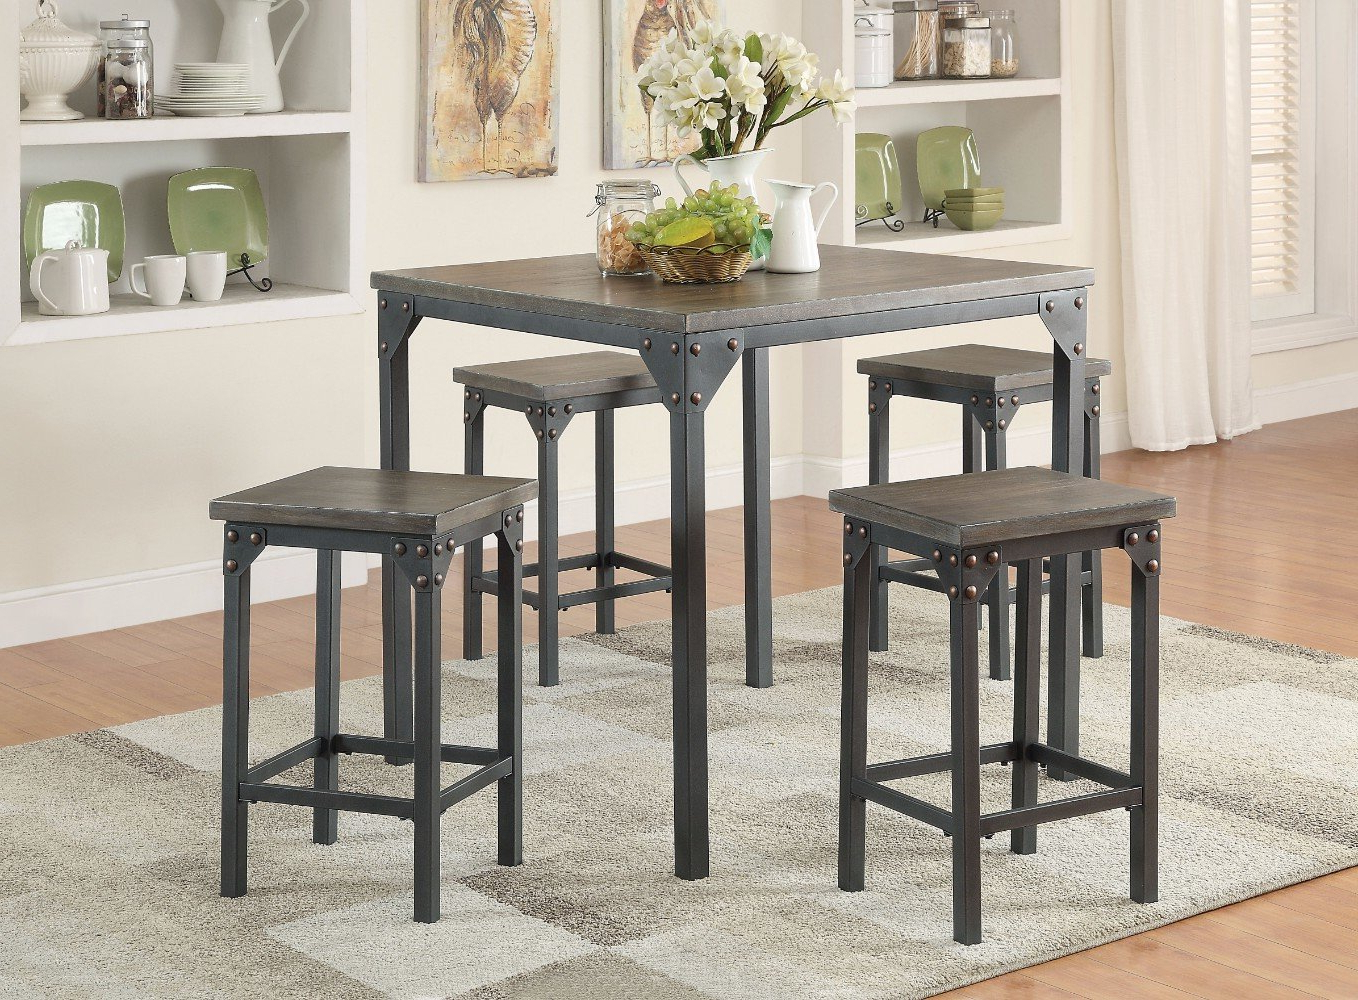 Popular Gracie Oaks Stackpole 5 Piece Counter Height Dining Set (View 18 of 25)